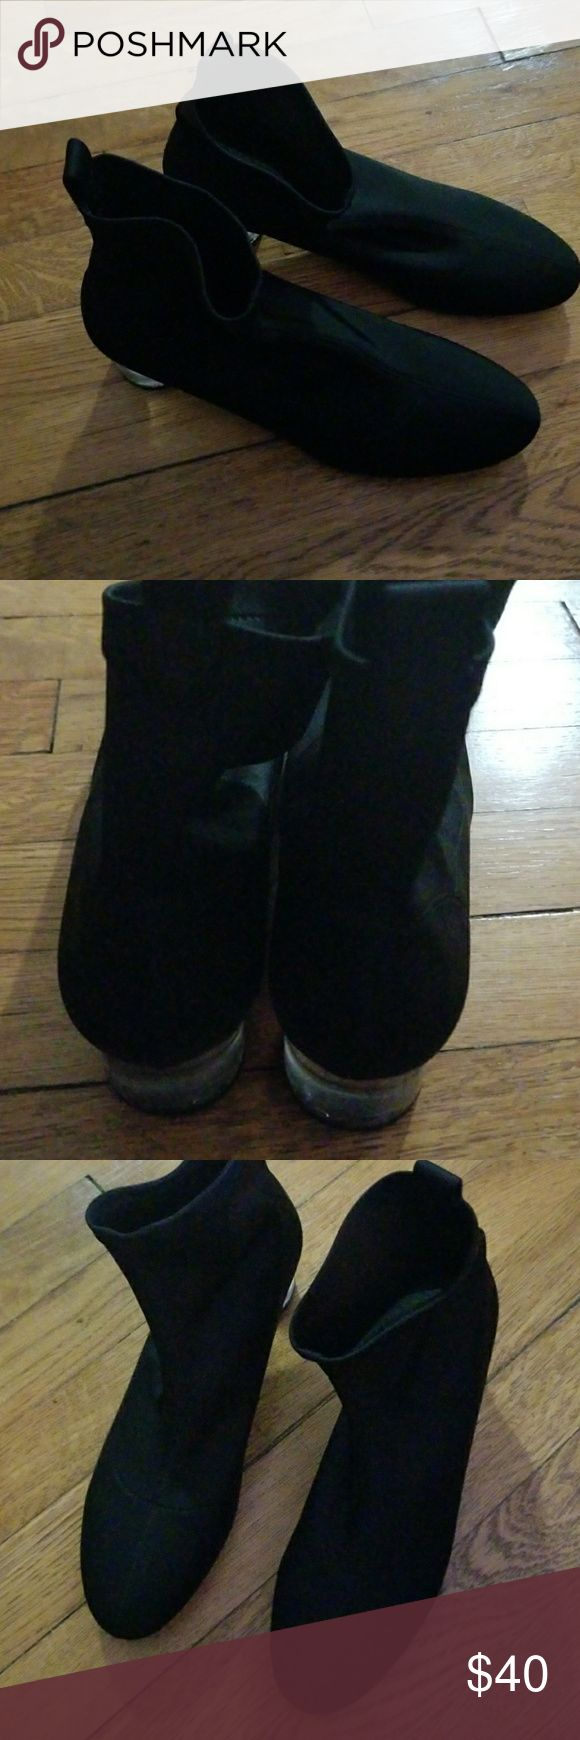 Zara sock boots Zara sock boots, crystal simulation heels. In good lighty used condition. Zara Shoes Ankle Boots & Booties